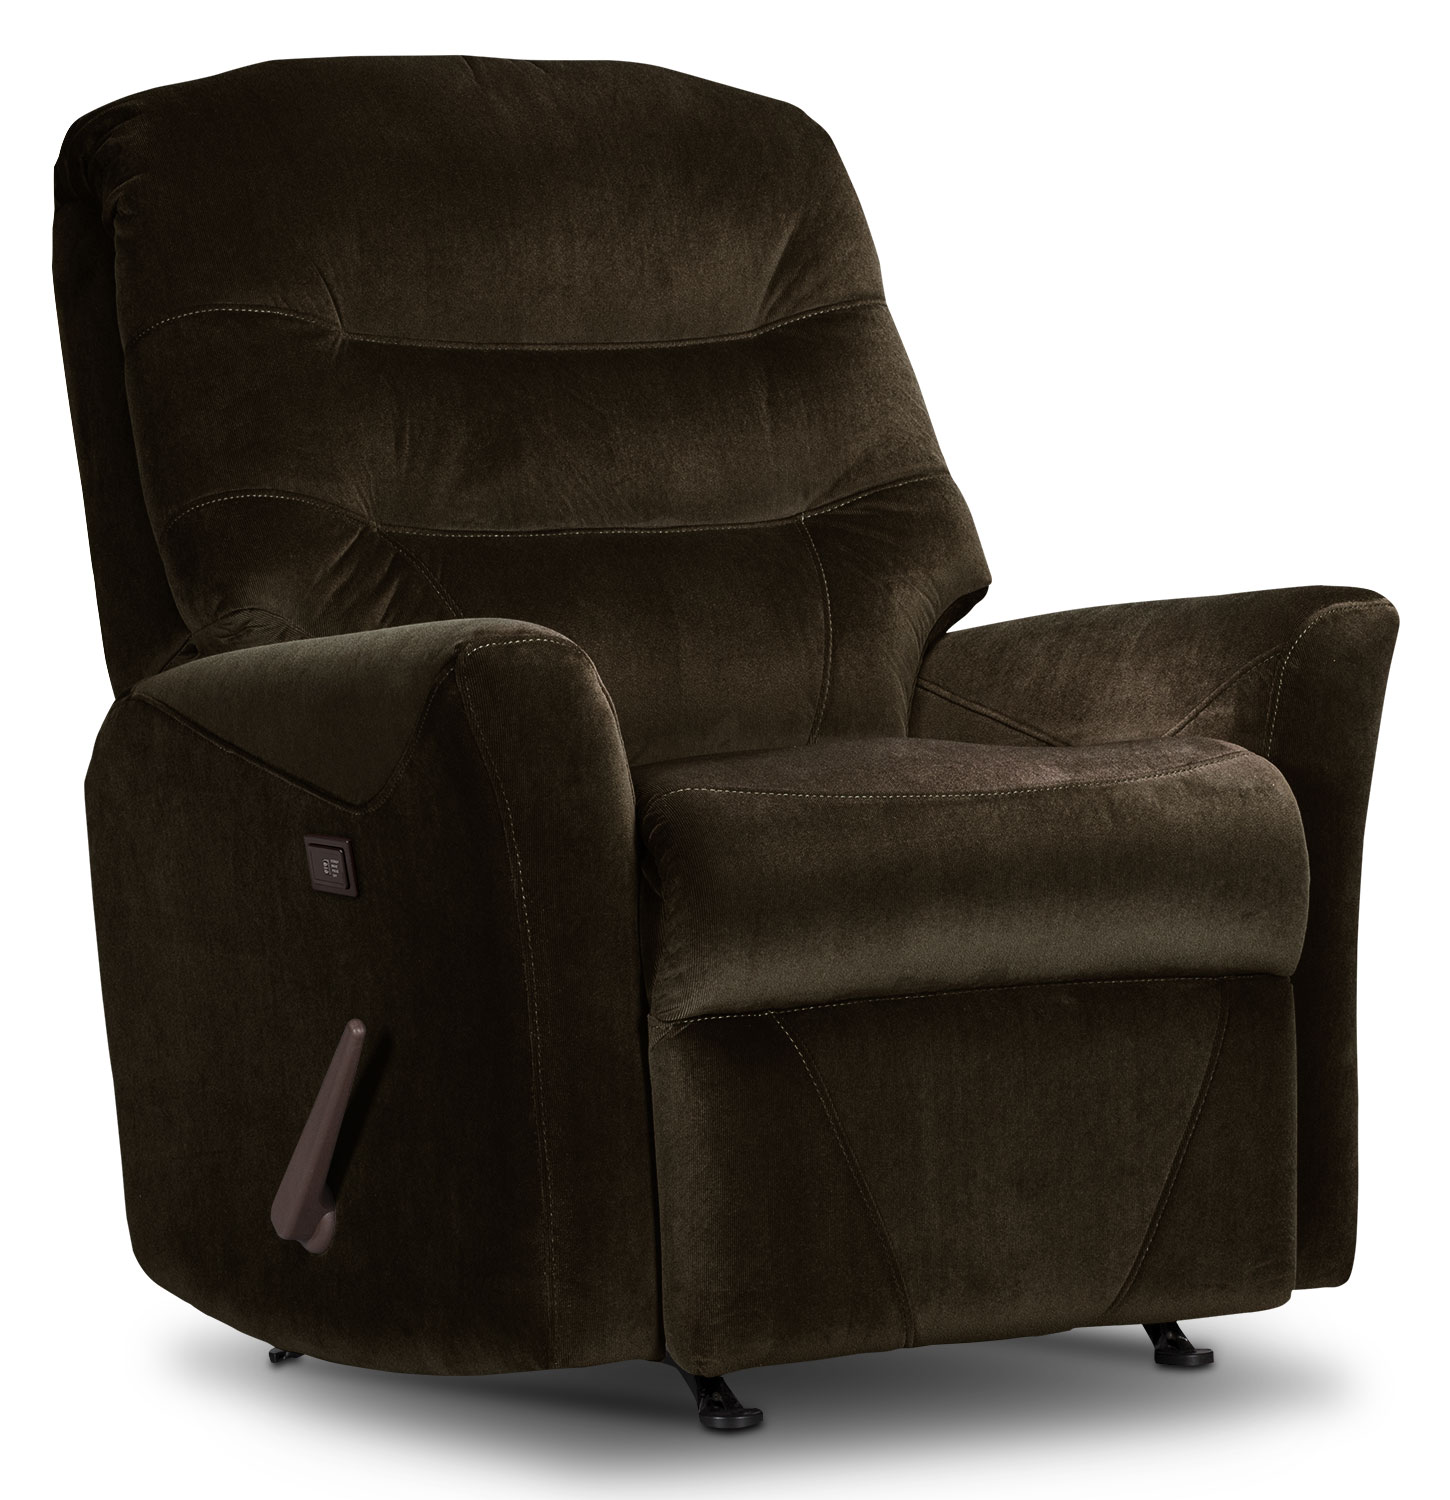 Designed2B Recliner 4560 Microsuede Massage Recliner - Chocolate